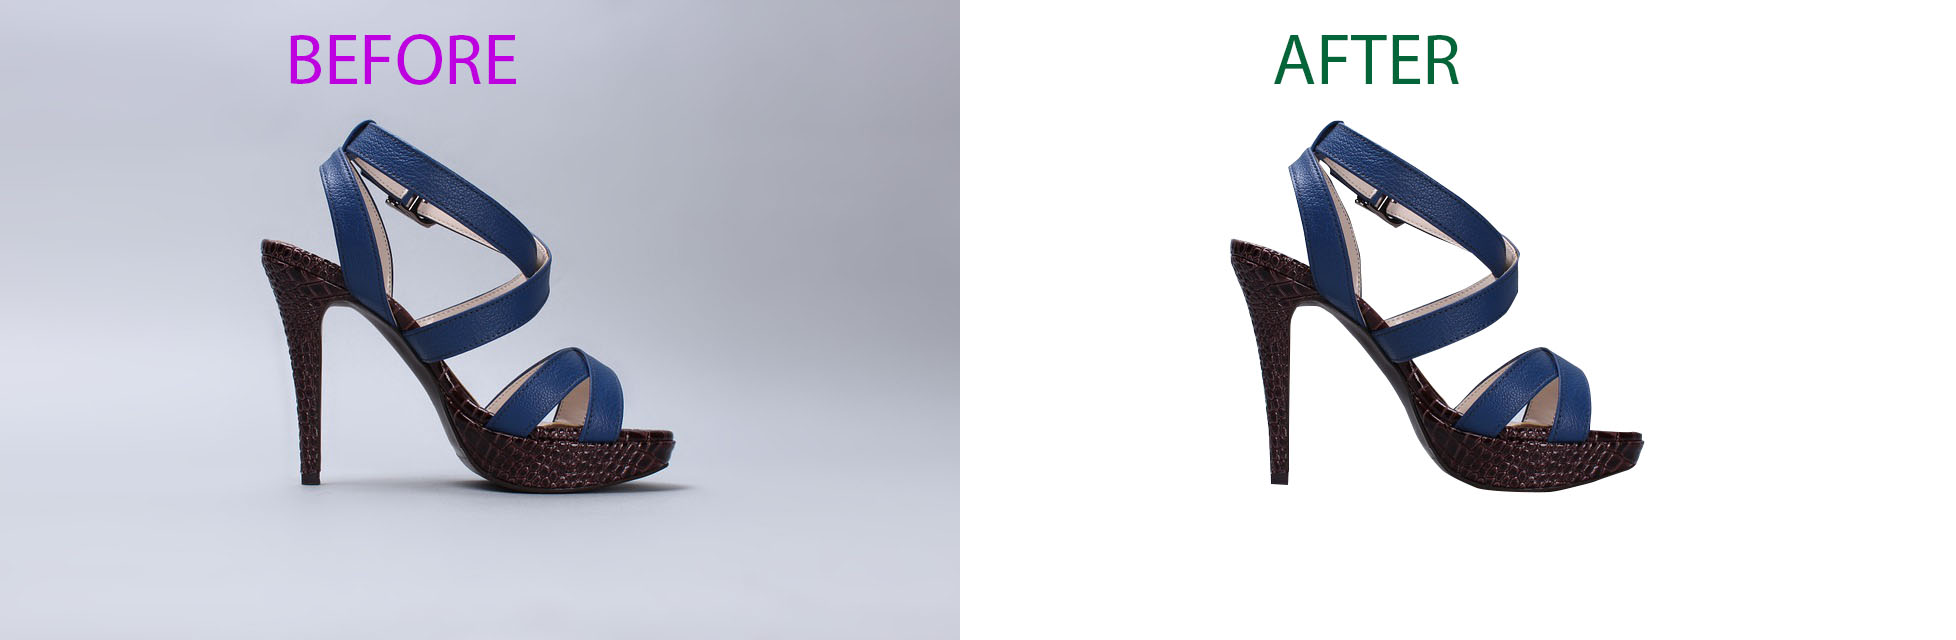 25 image Clipping path Background Remove only fo r 5